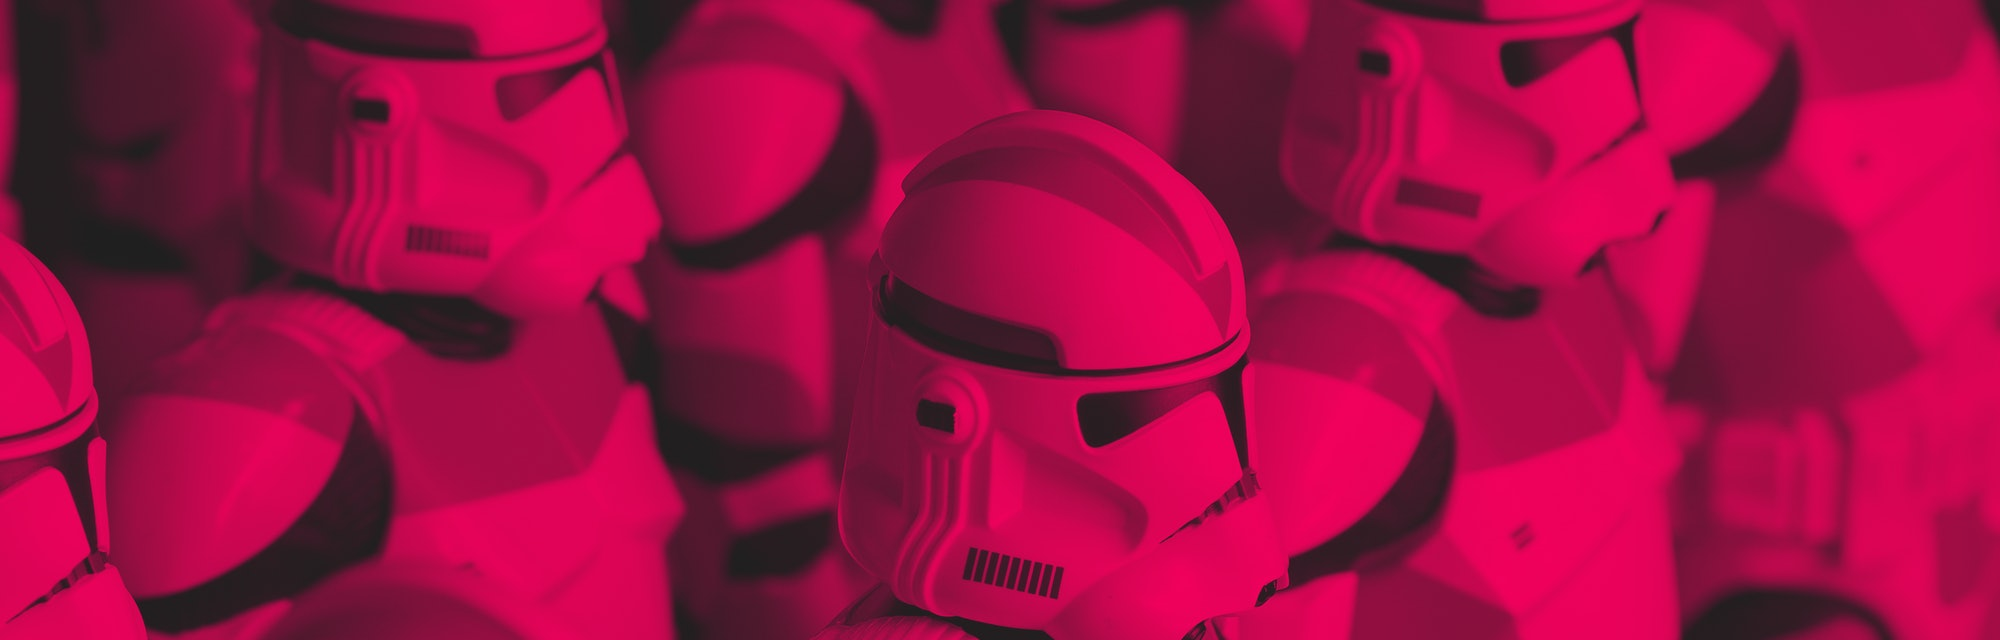 ANAHEIM, CA - AUGUST 18: Clone Troopers used to produce commissioned fan art by Paul Otaguro of Fact...